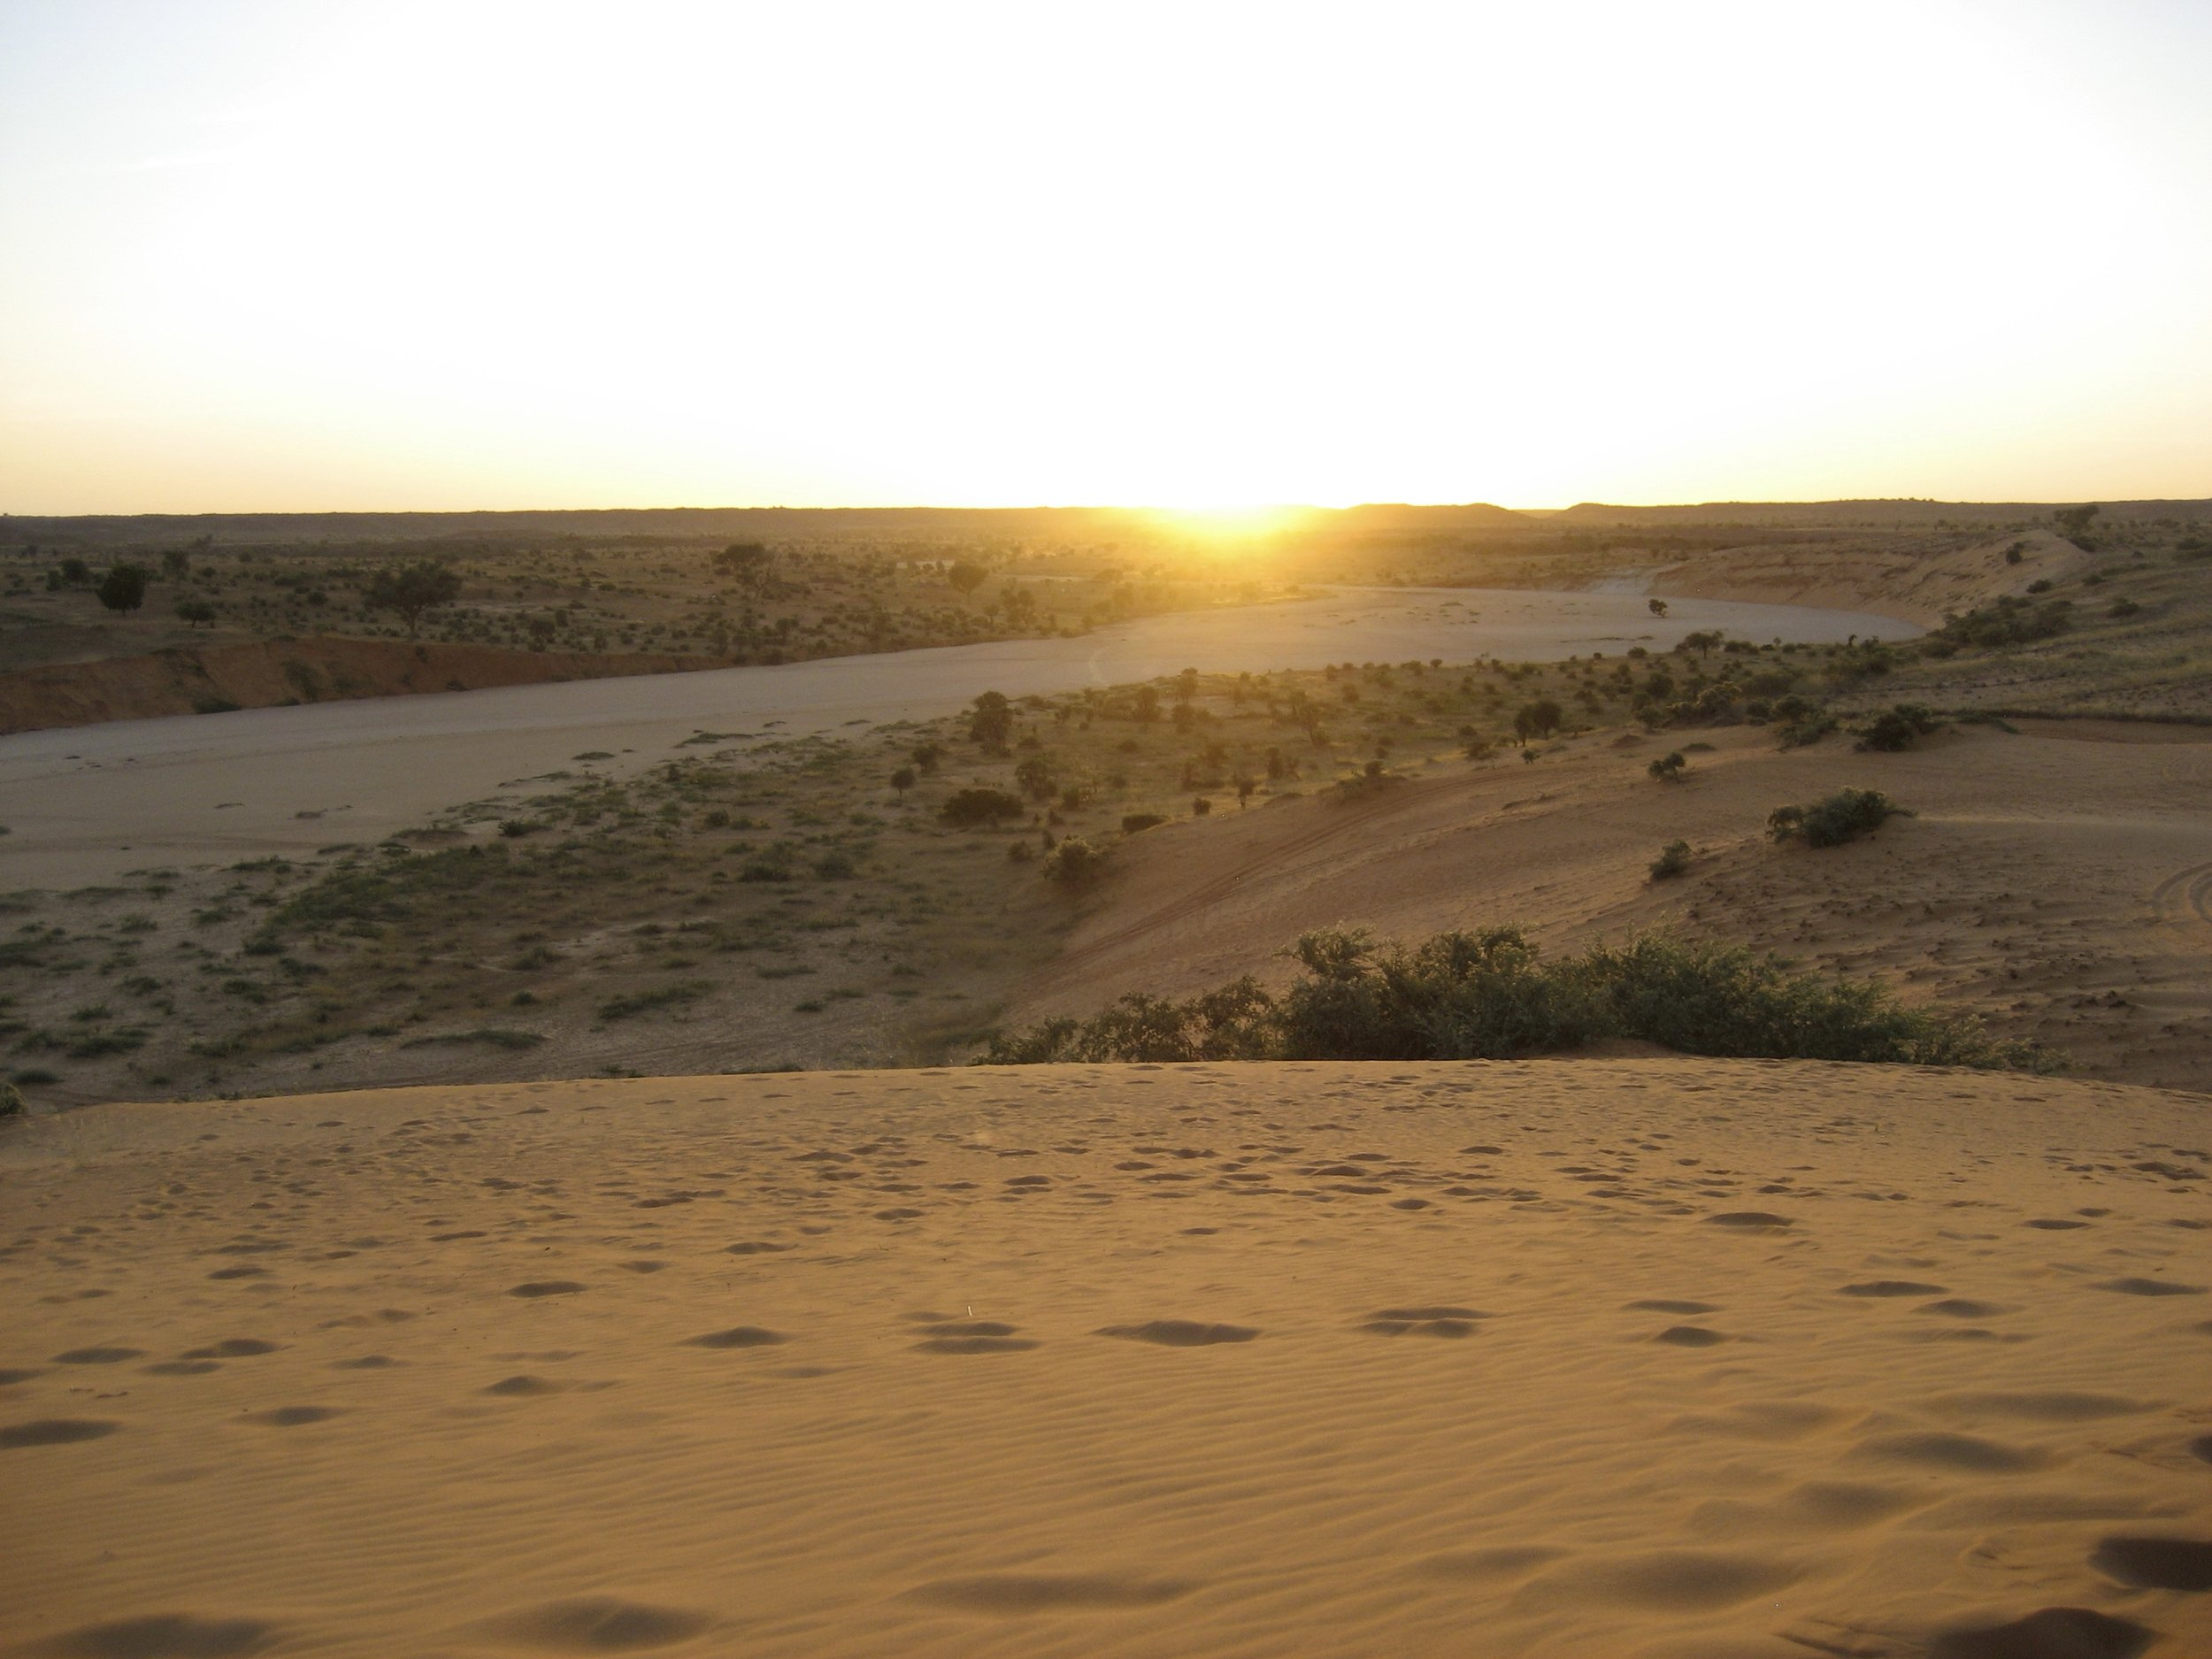 Desert in Niger just outside of Niamey